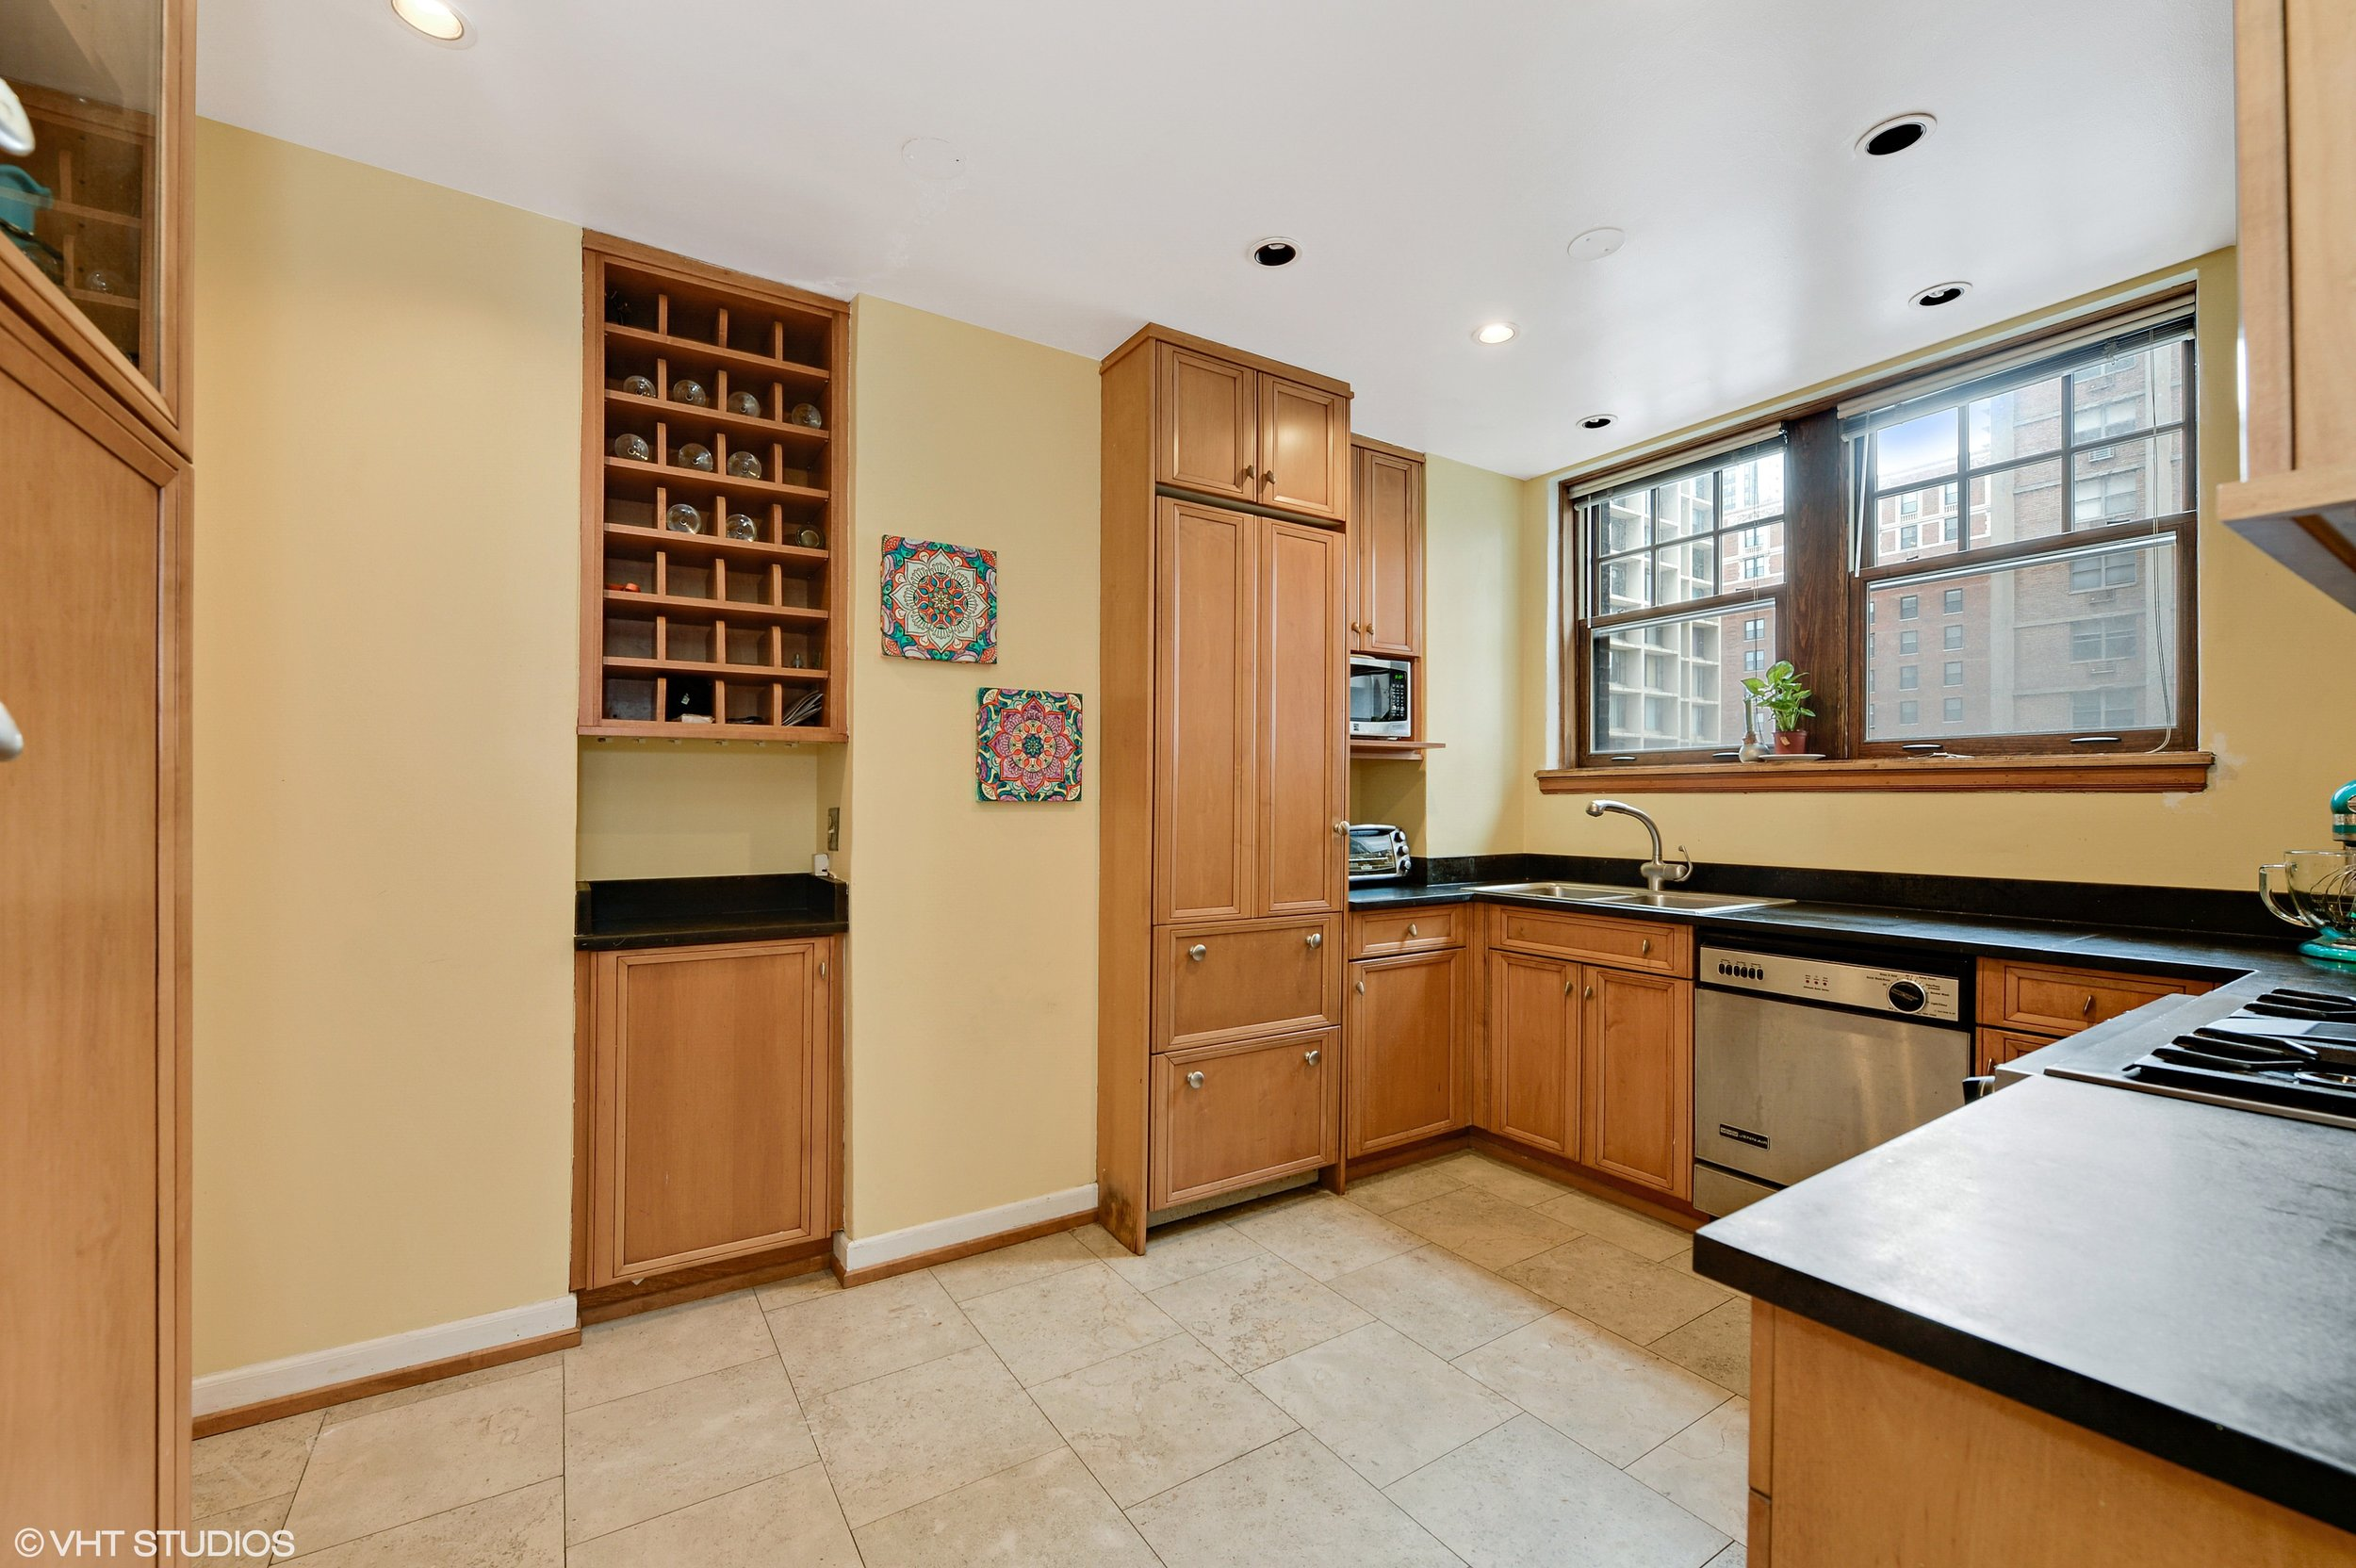 06_421WestMelroseSt_3B_177_Kitchen_HiRes.jpg